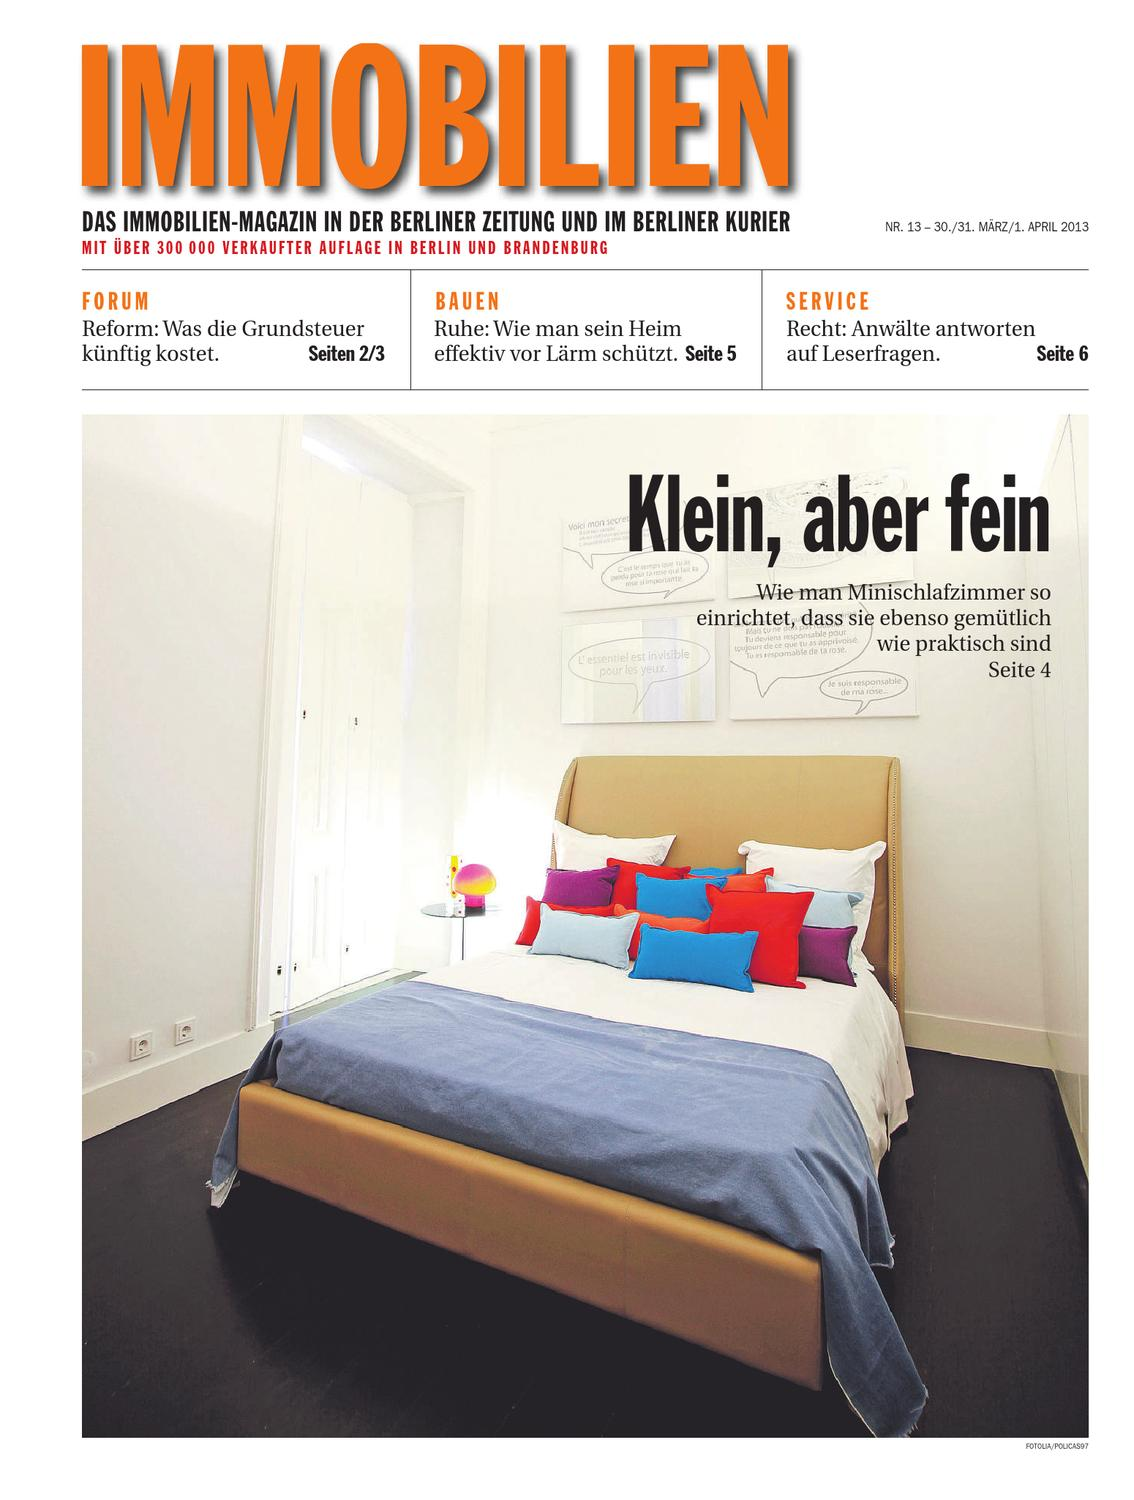 Vorbauwand Wc Immobilien Magazin By Berlin Medien Gmbh Issuu